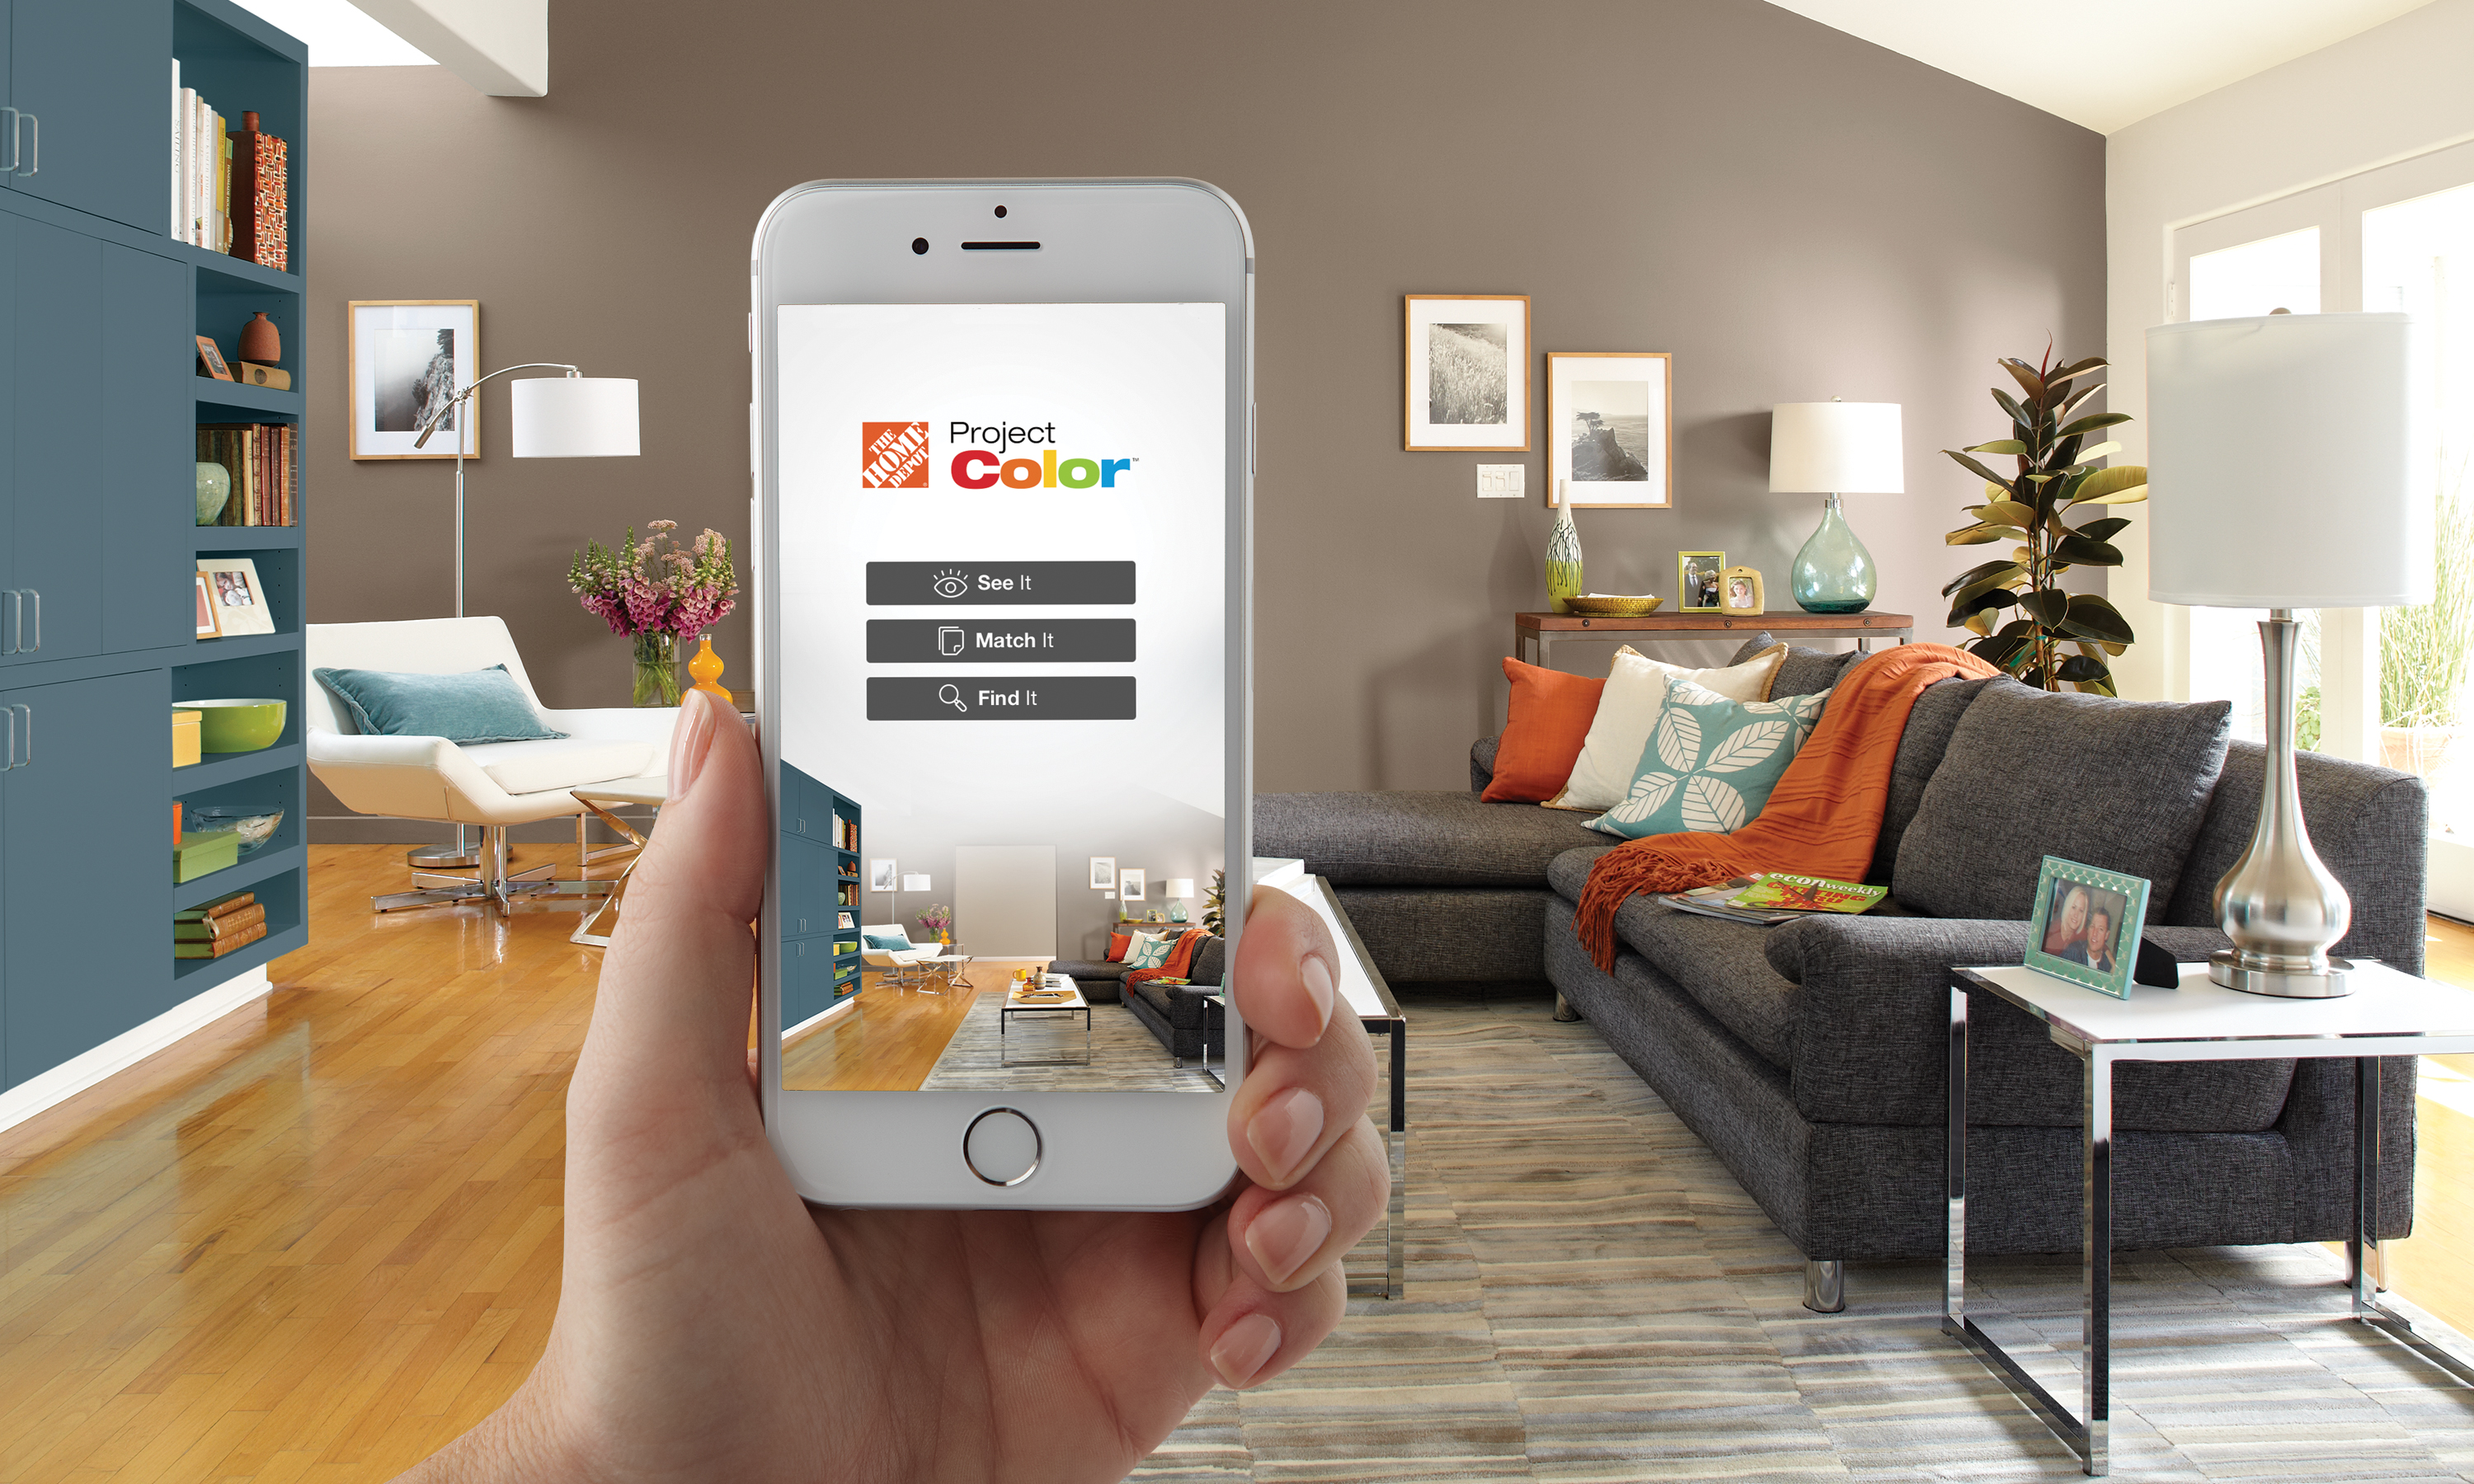 The home depot new technology shows you the perfect paint color before its on your walls